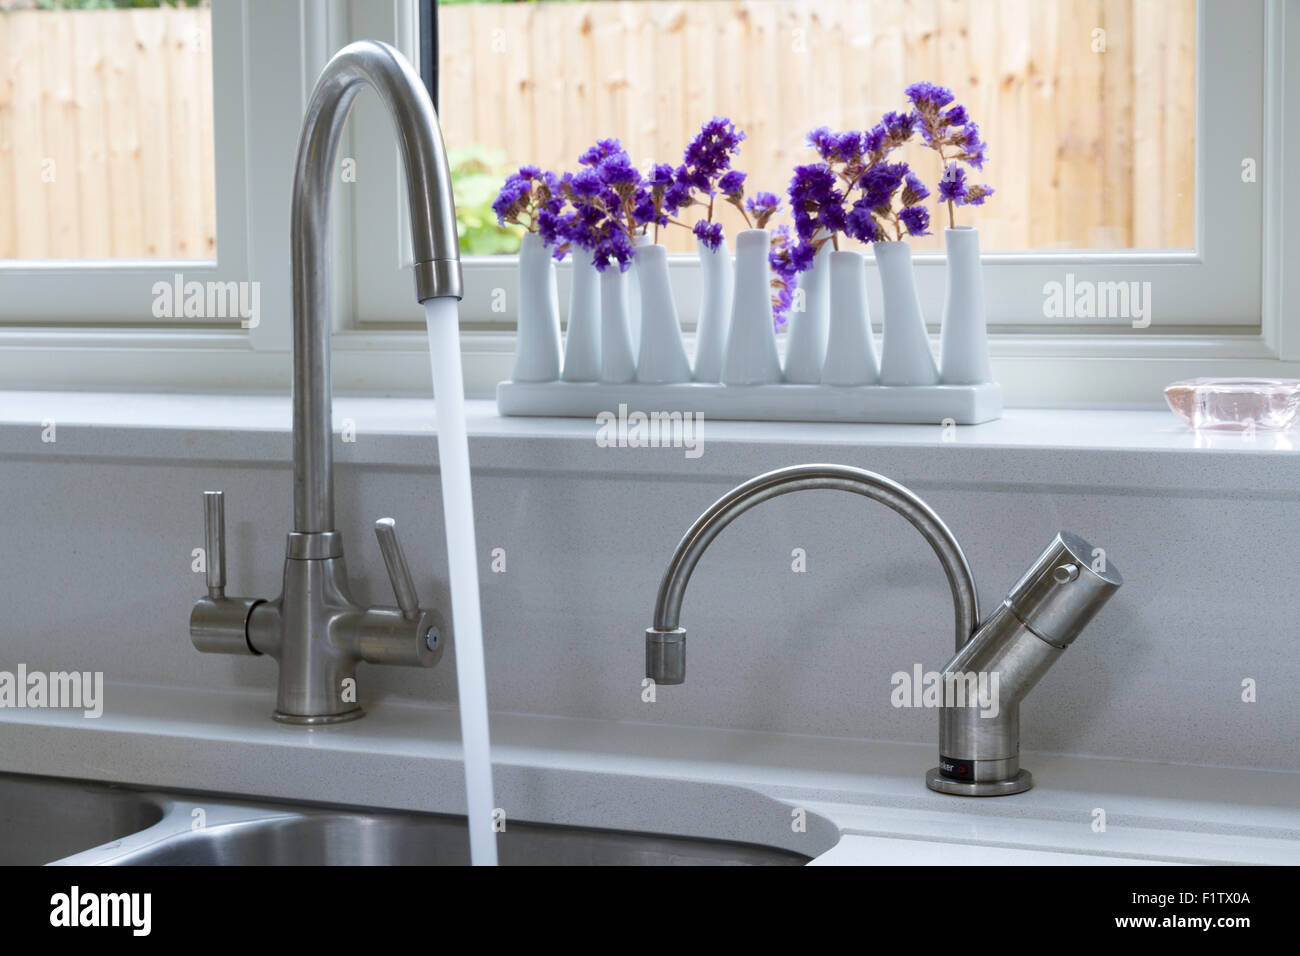 Kitchen Mixer Tap Stock Photos & Kitchen Mixer Tap Stock Images - Alamy